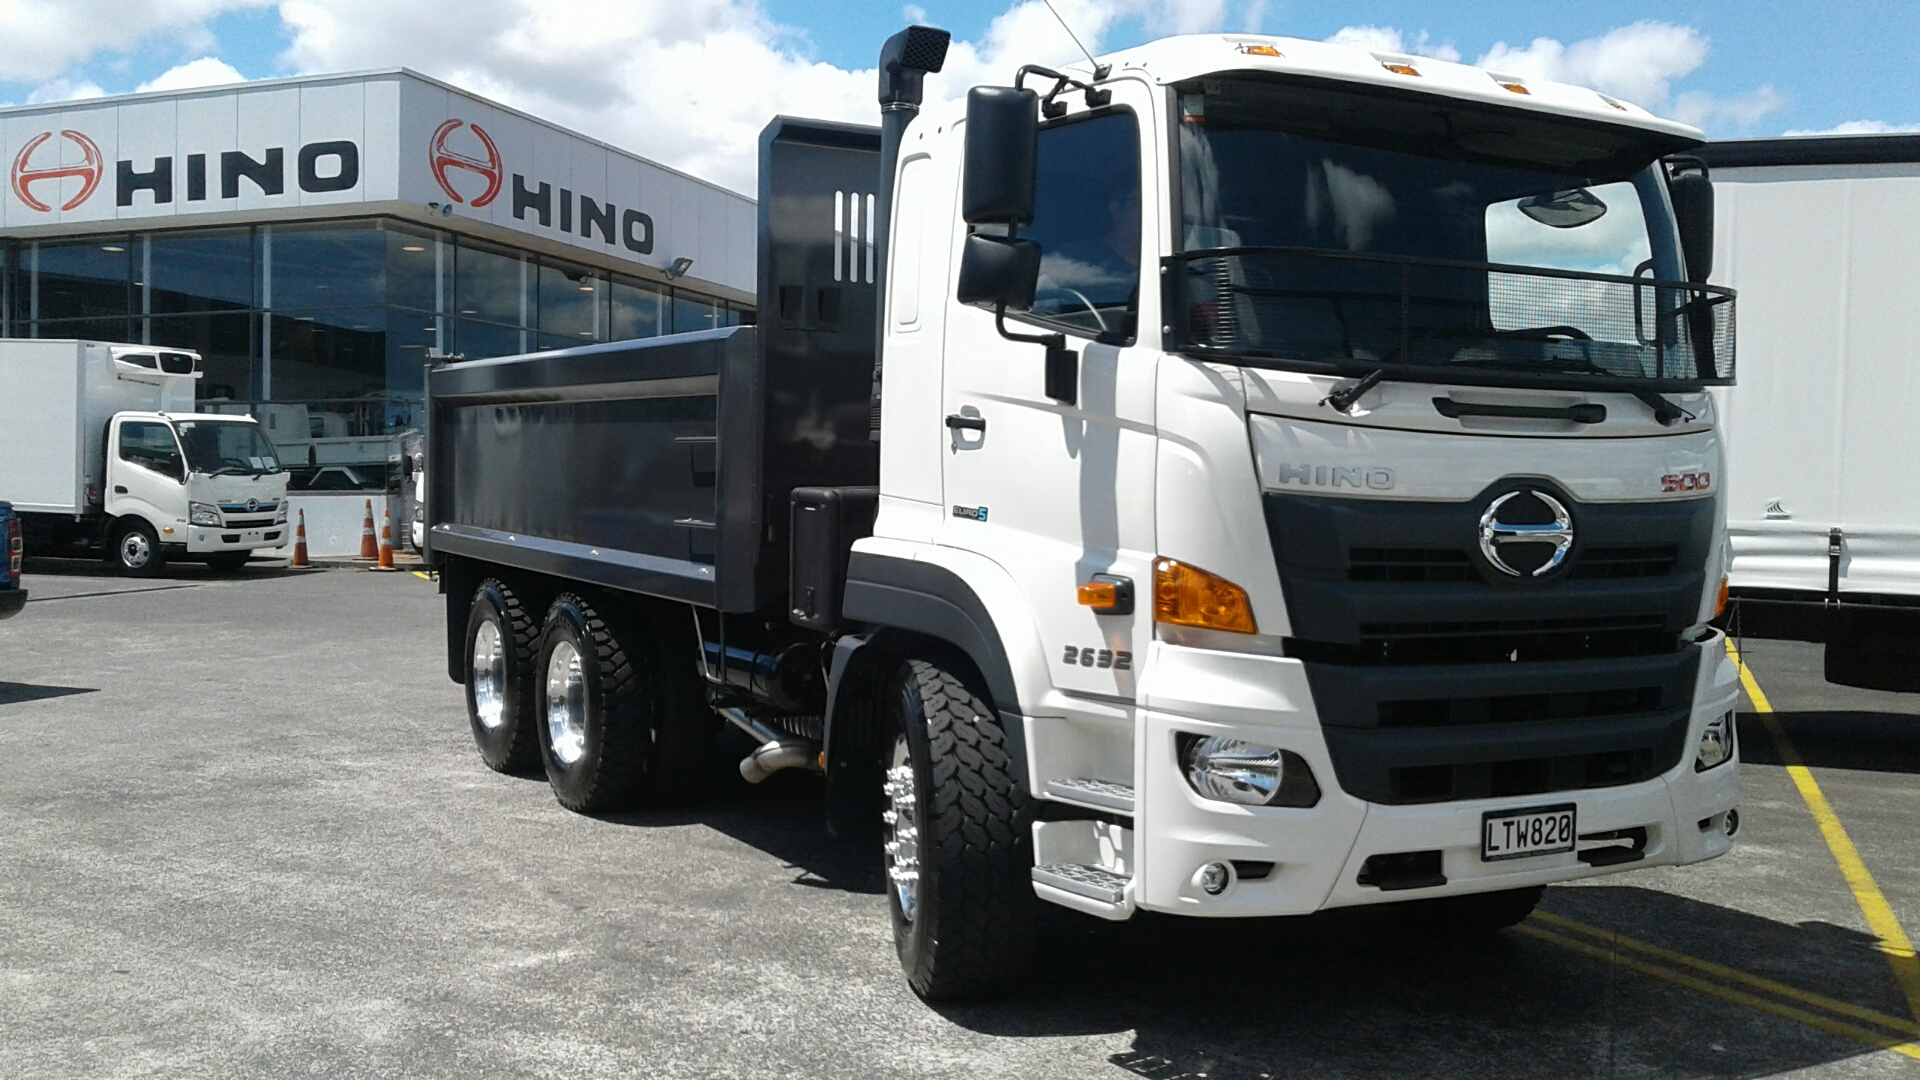 ARC - 500 Series Wide Cab Tipper